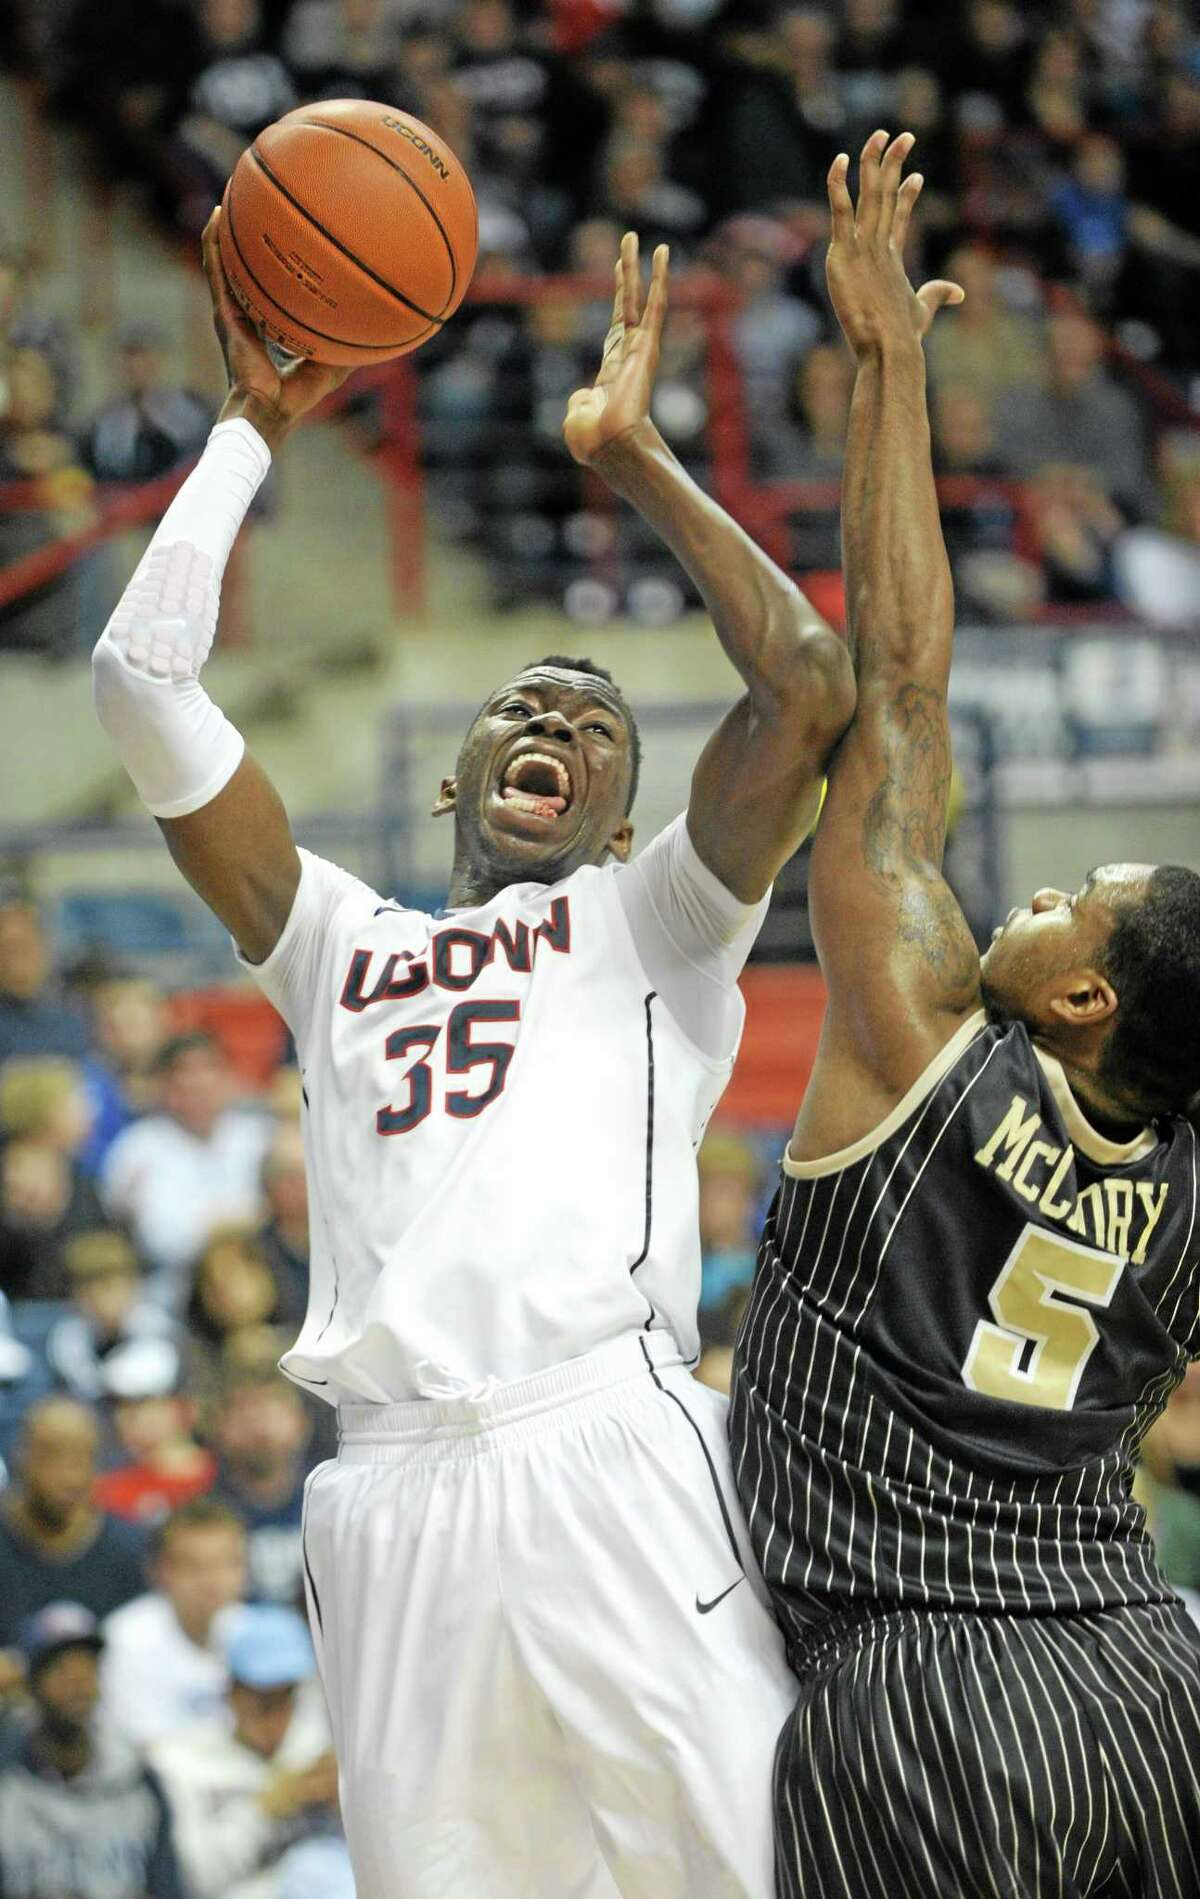 UConn's Amida Brimah looks to make a shot past the reach of Central Florida's Eugene McCrory during the second half of the Huskies' 84-61 win on Saturday in Storrs.